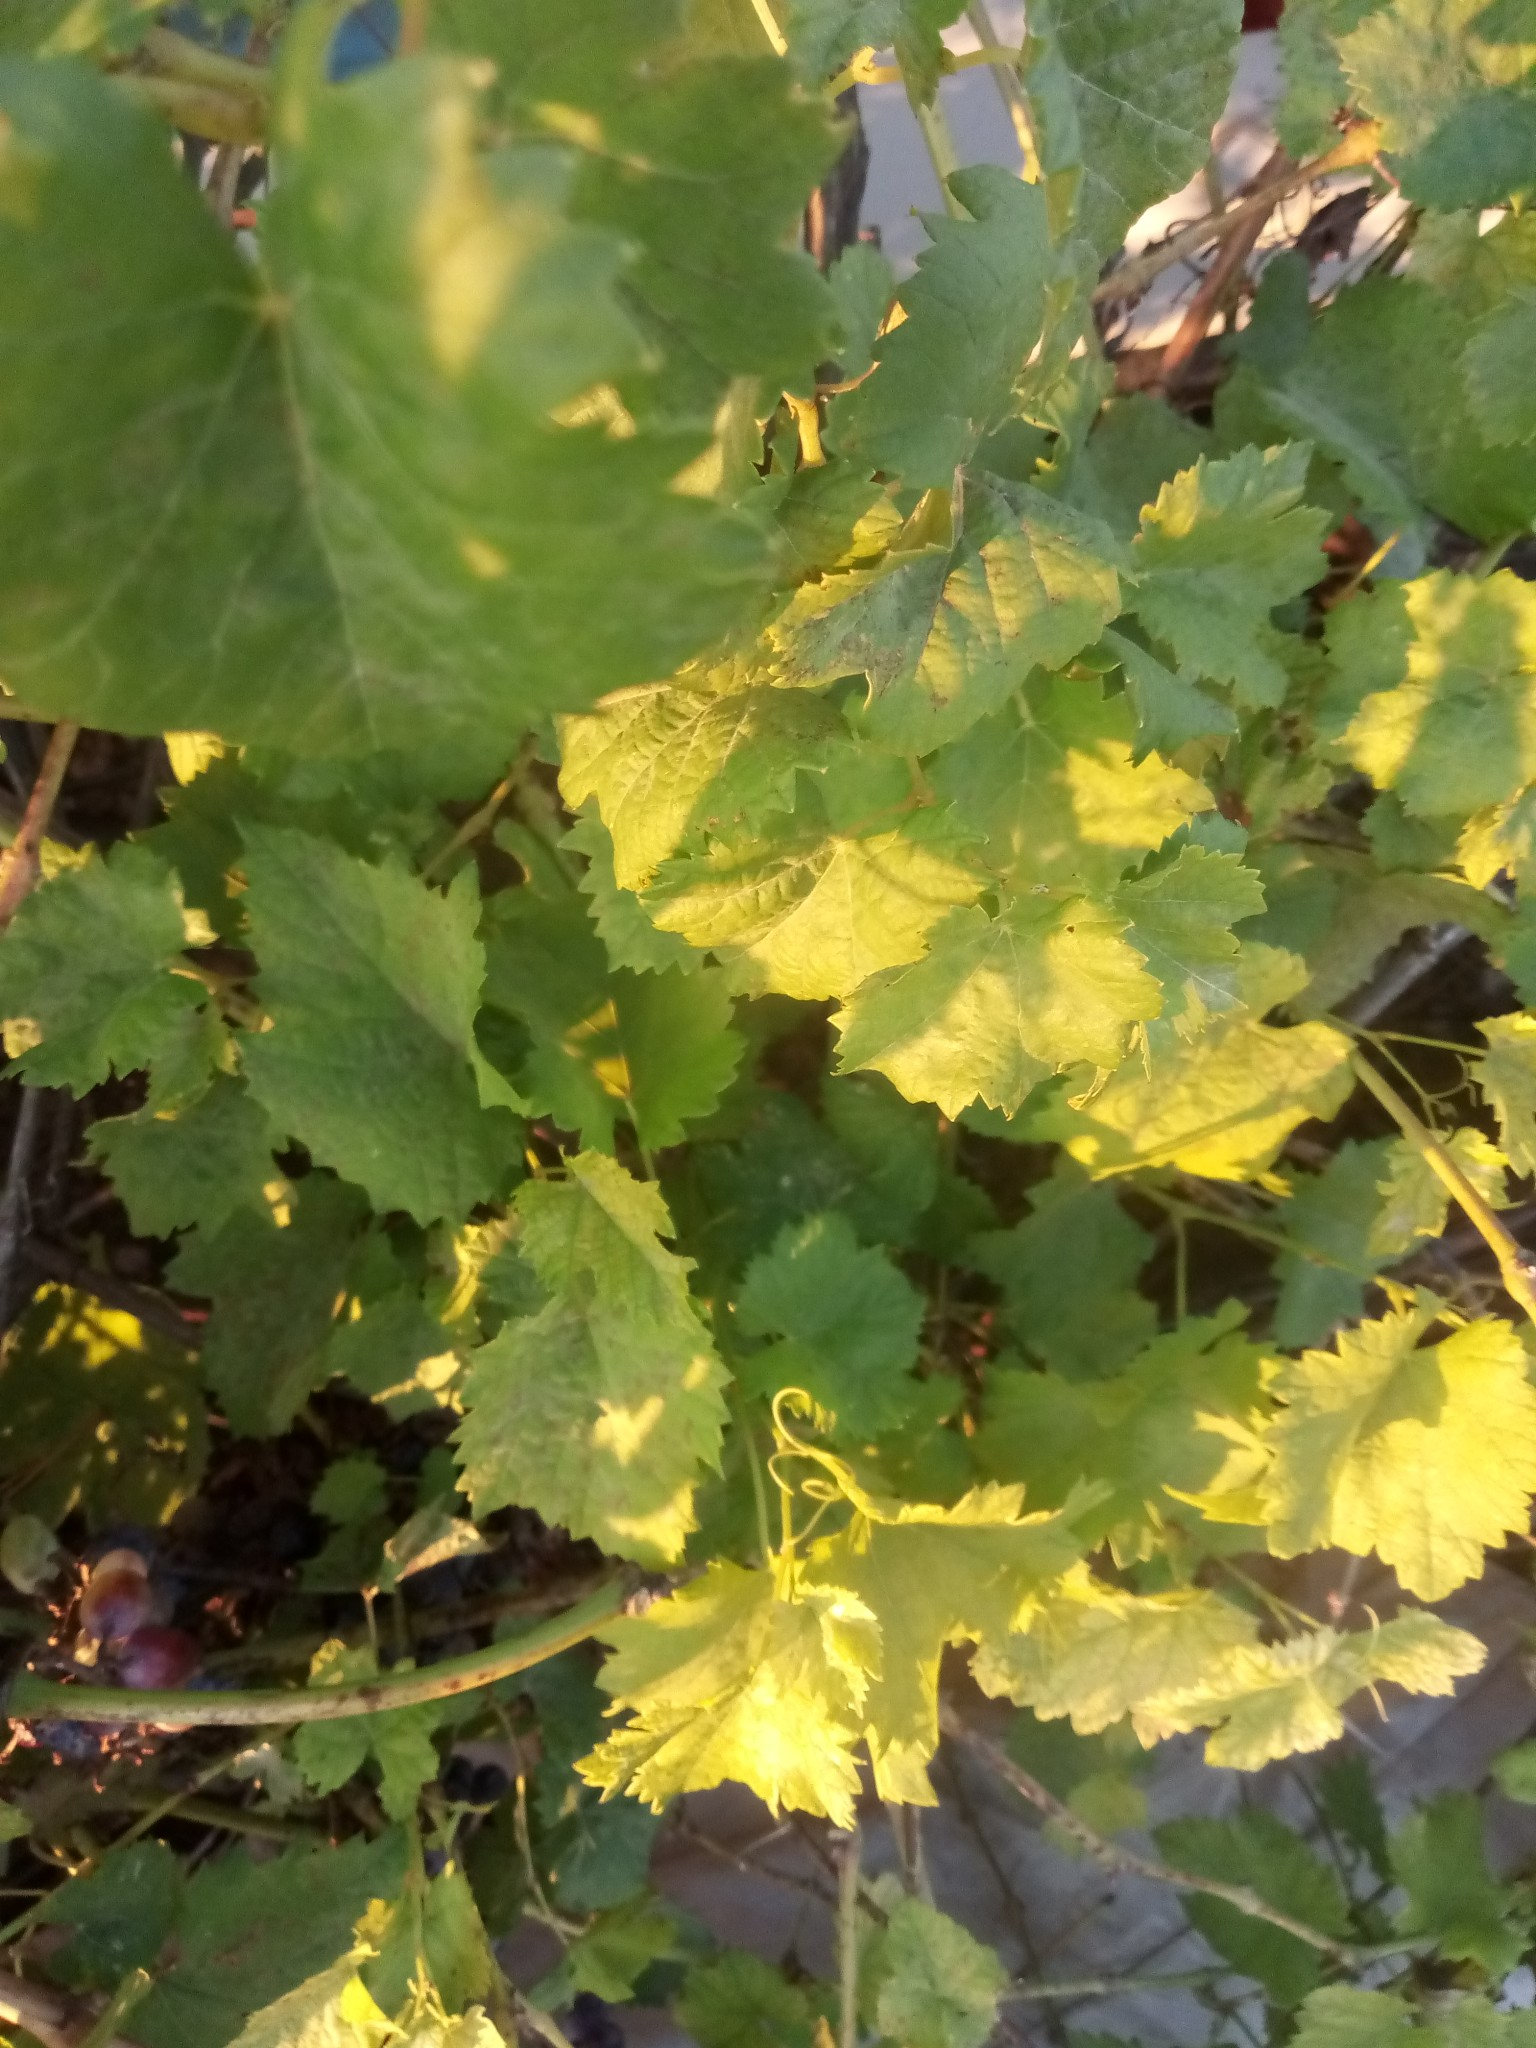 Green leaves of grapes